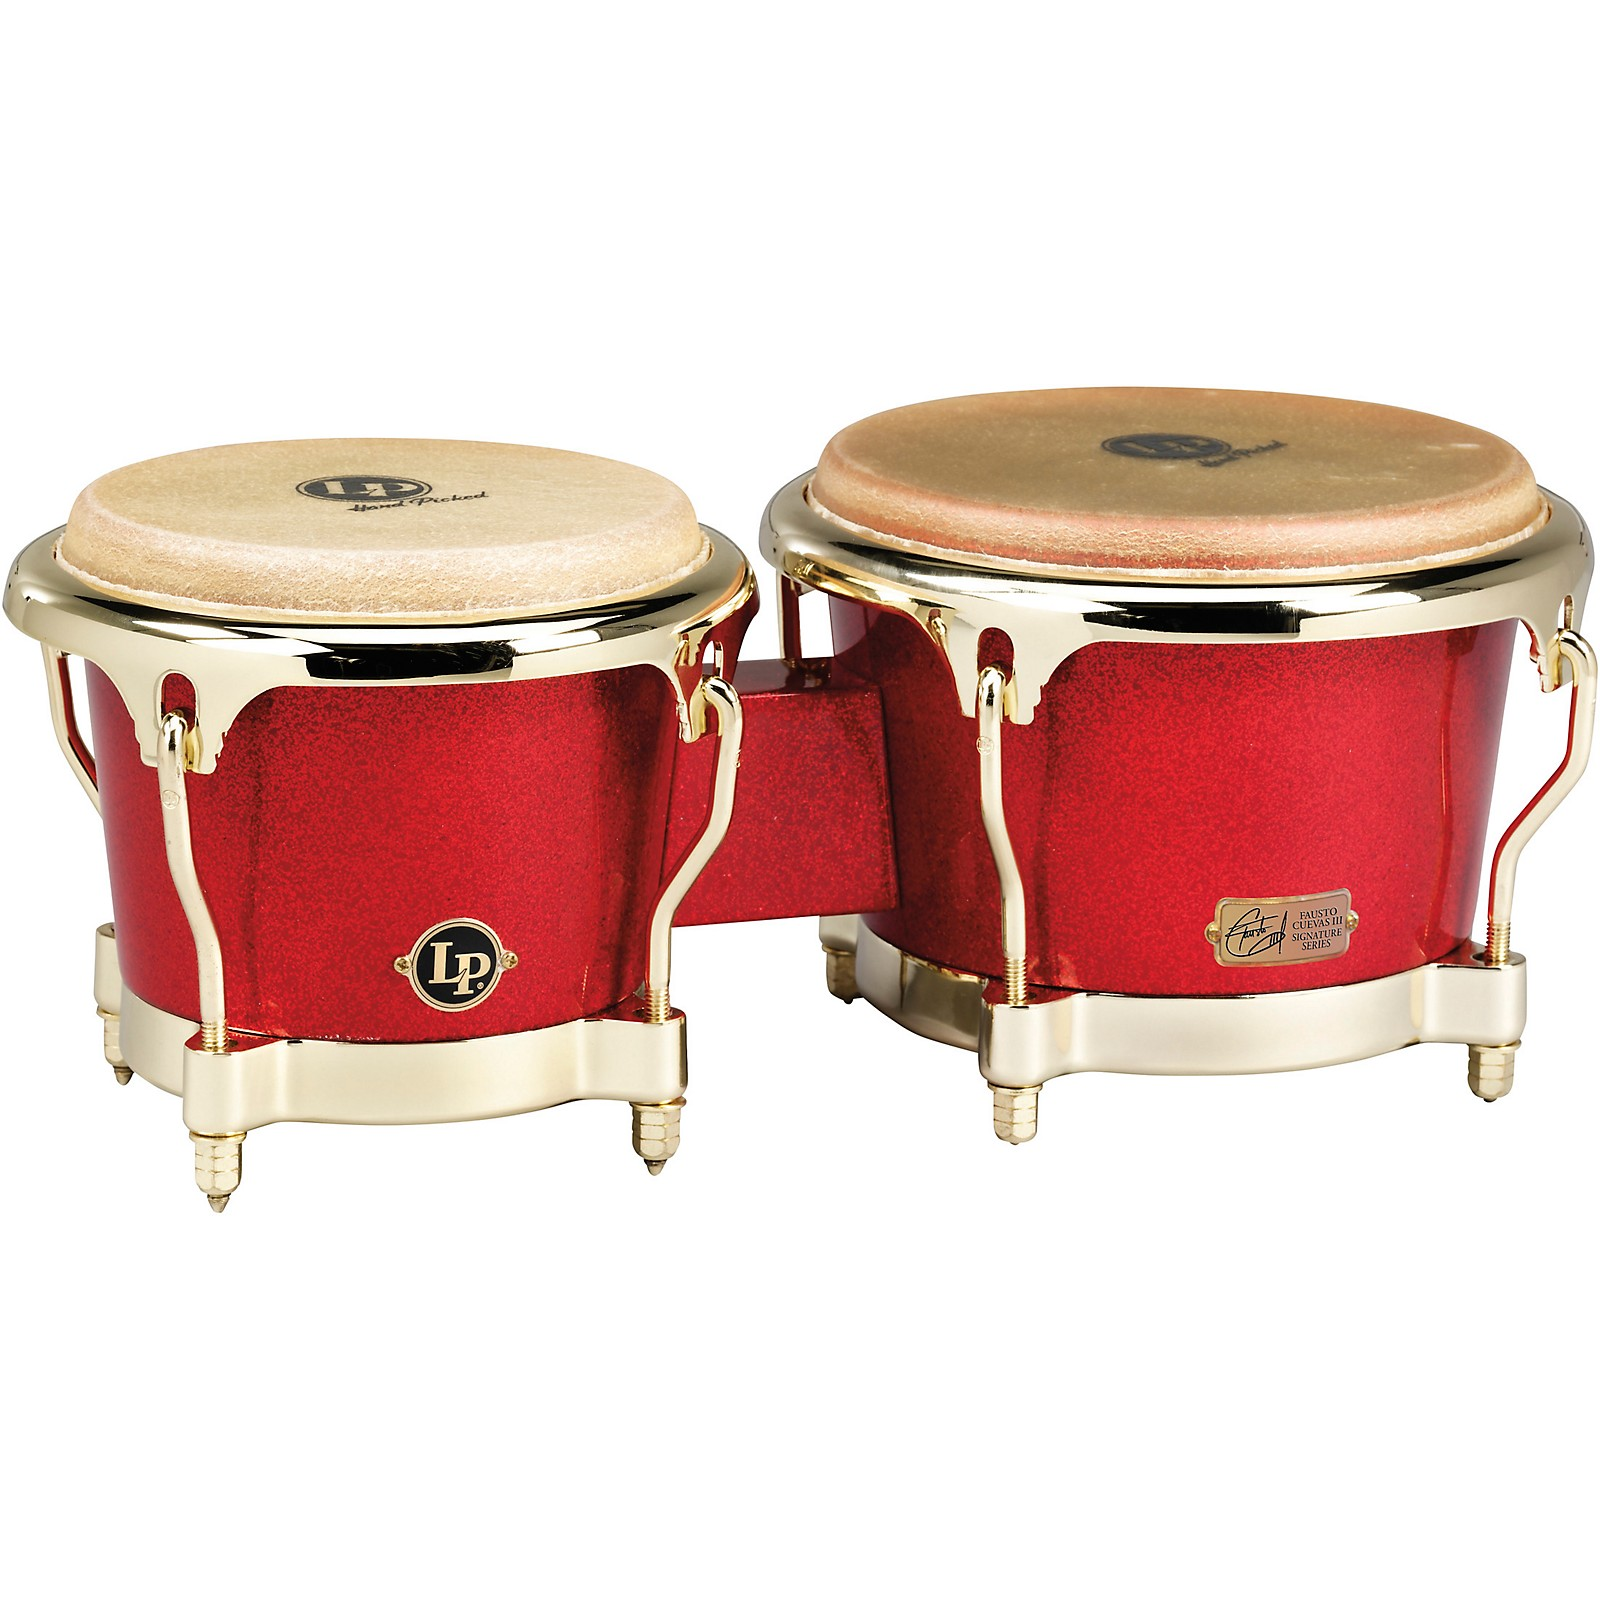 LP Galaxy Series Fiberglass Fausto Cuevas III Signature Bongos, Arena Red with Gold Hardware